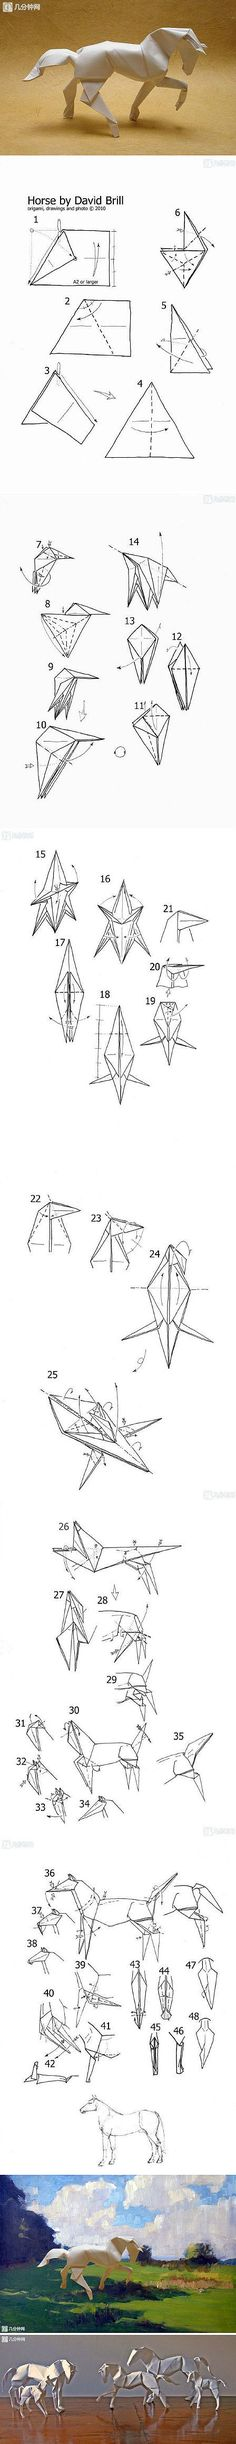 David Brill's Origami Horse - diagram instructions                              …